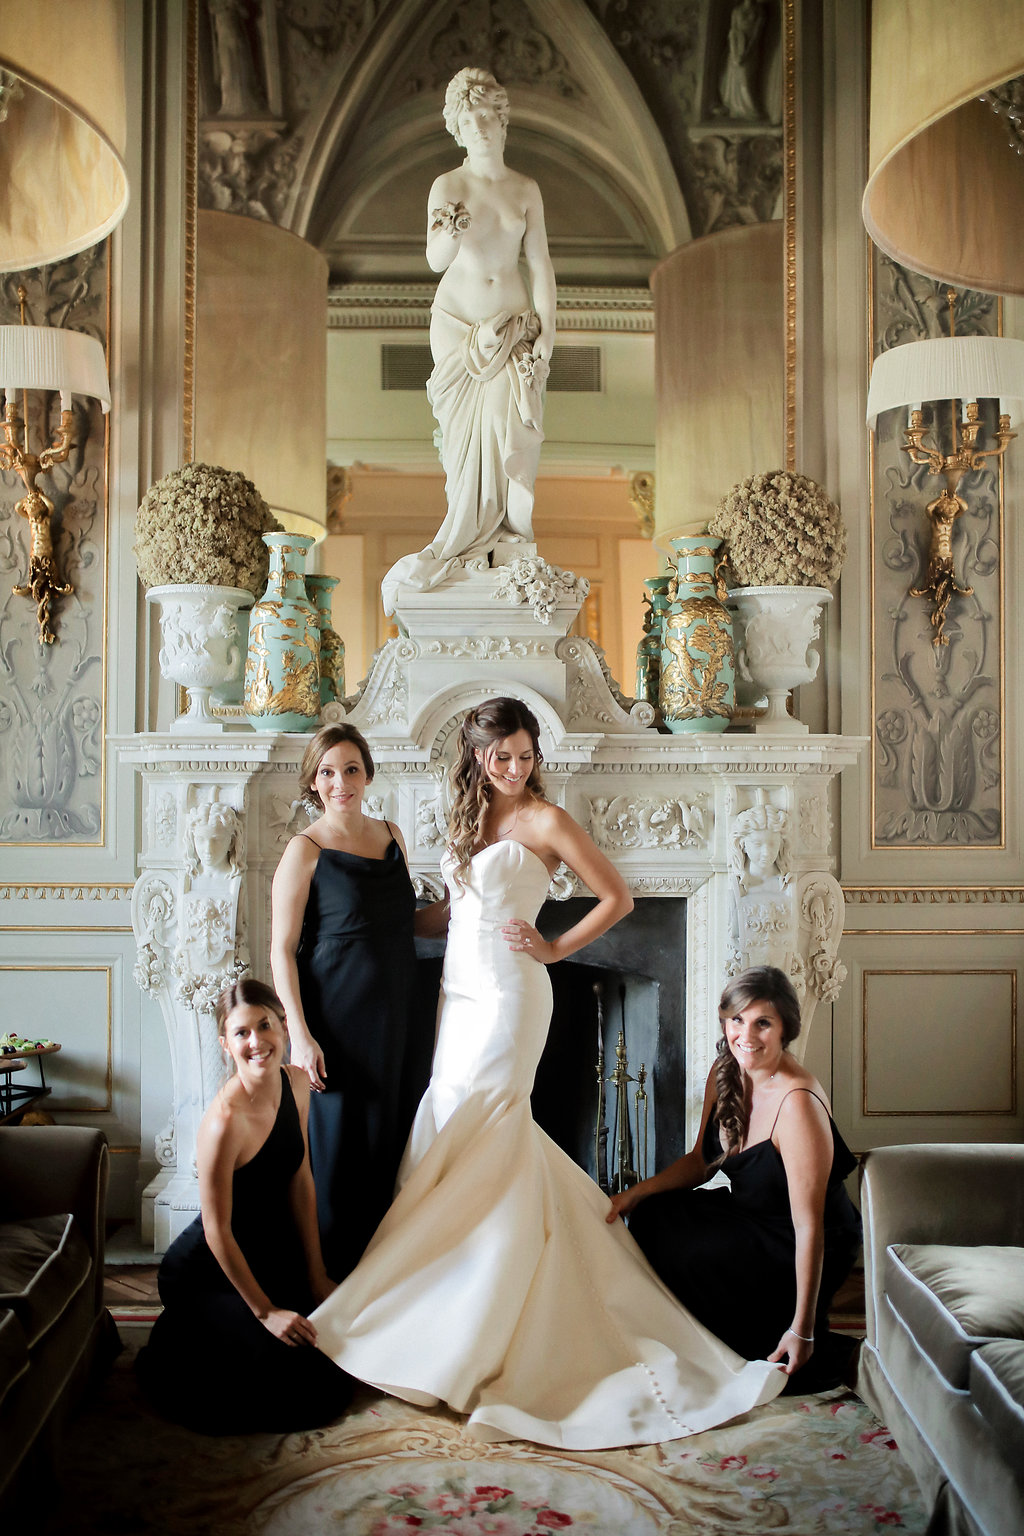 Michelle Garibay Events | Lara Emme Fotografie | Elegant Black, White and Gold Wedding | Villa Cora Florence Italy